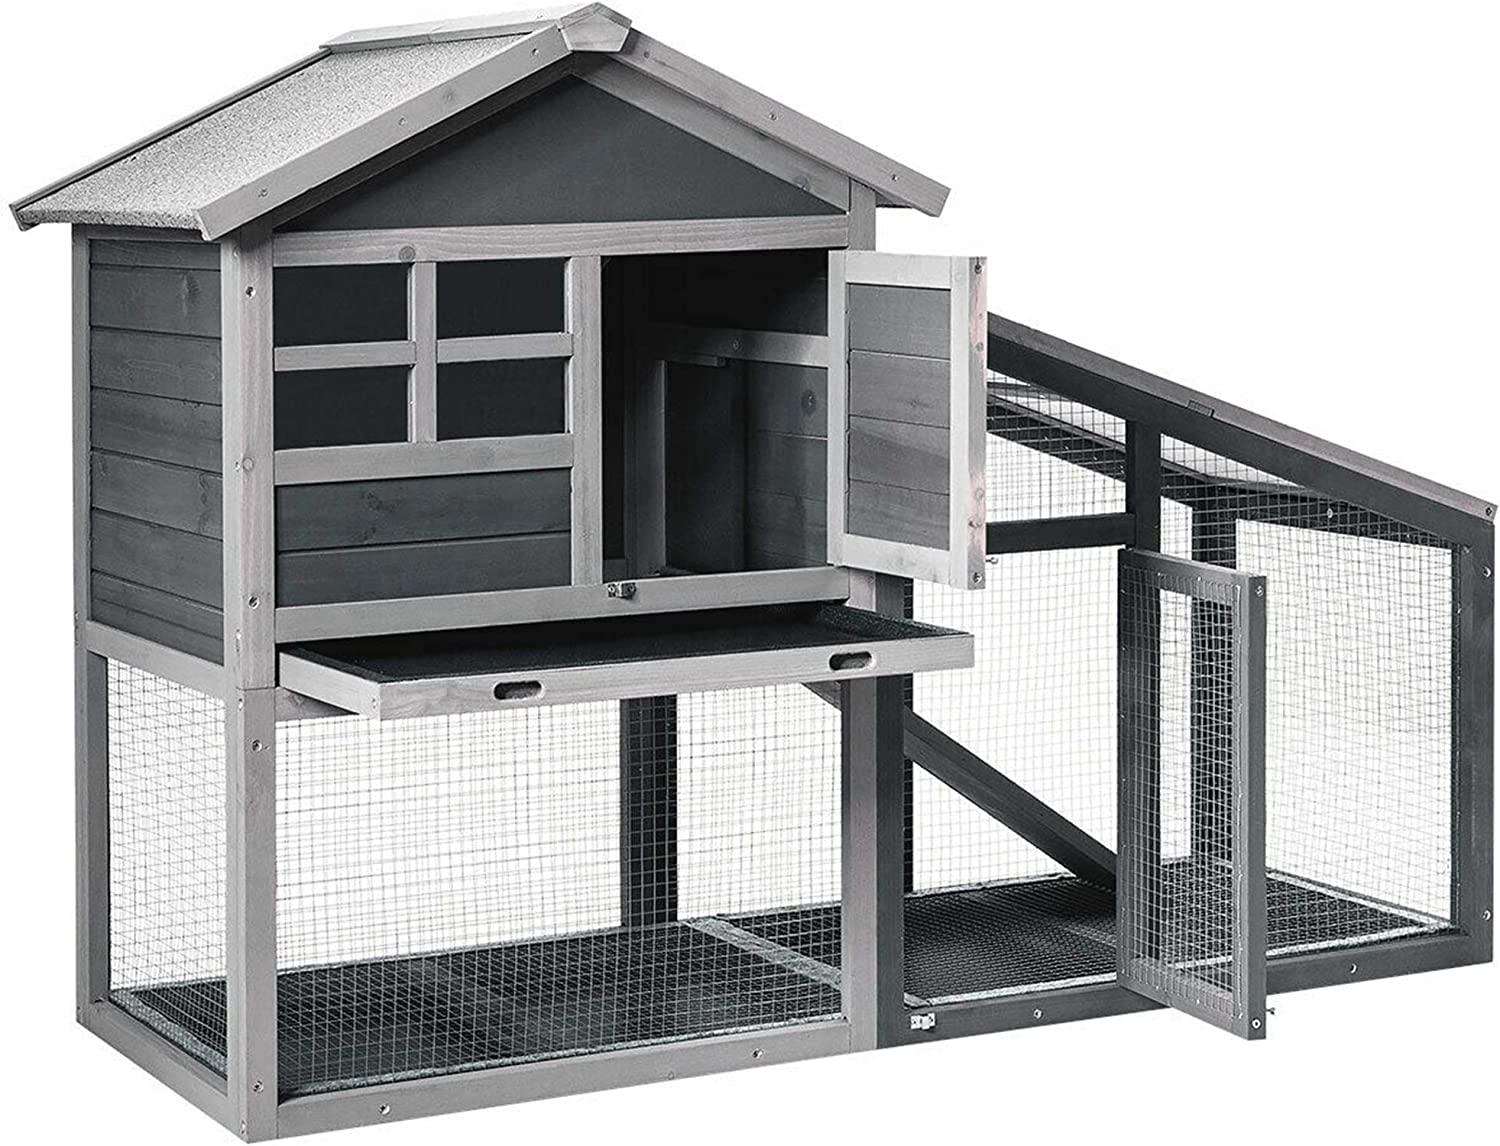 LS Line Elegant Beautiful Easy to Use Favorable Comfortable Extra Space Wooden Rabbit Hutch Large Chicken Pet Home House Weatherproof Furniture fot Indoor Outdoor Use (1)